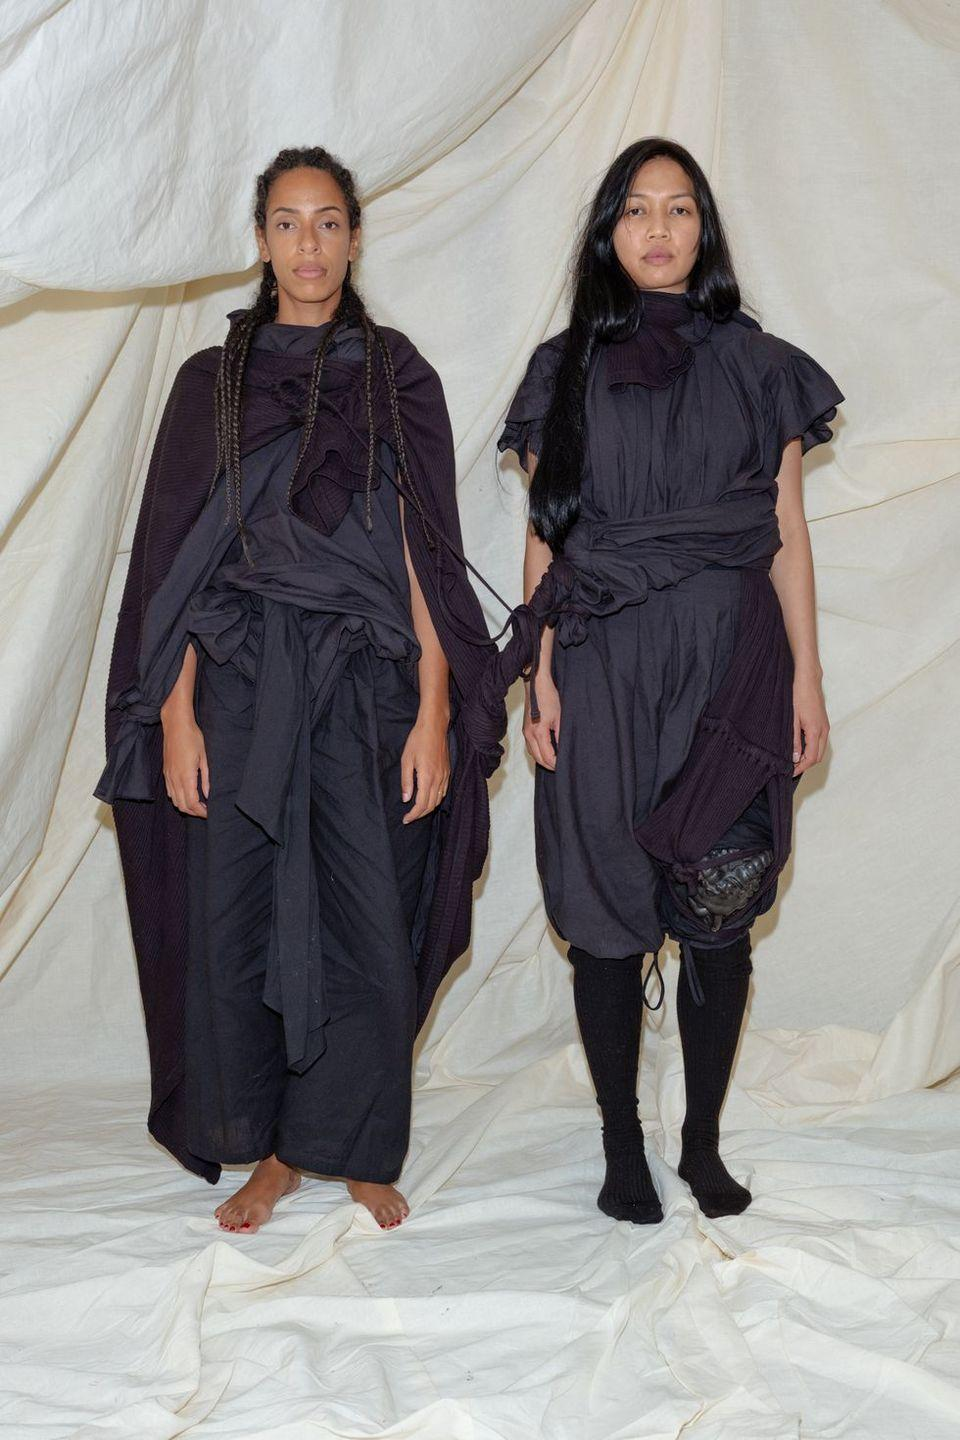 """<p>For those seeking stylish and sustainable basics such as underwear, swimwear and loungewear then Baserange is what you are looking for.</p><p>'It has always been a part of our brand design to ensure that our impact on the environment is as minimal as possible.' Baserange's co-founder Blandine de Verdelhan told ELLE UK .</p><p>'We only use natural fibres including organic cotton, bamboo, wool or linen - all of which are biodegradable - and for items such as our swimwear which may require the use of synthetics, we choose to work with recycled PA or PE. We also develop products using left over fabric, as a means to reduce waste.'</p><p>'It isn't just our environmental impact that we consider; the health and wellbeing of our workers and customers is also really important to us. We produce our garments in Europe, close to our warehouse, with family-run factories with good working conditions. Our community is what drives us and we very much look upon them as family.'</p><p><a class=""""link rapid-noclick-resp"""" href=""""https://www.baserange.net/"""" rel=""""nofollow noopener"""" target=""""_blank"""" data-ylk=""""slk:SHOP BASERANGE NOW"""">SHOP BASERANGE NOW</a><br></p>"""